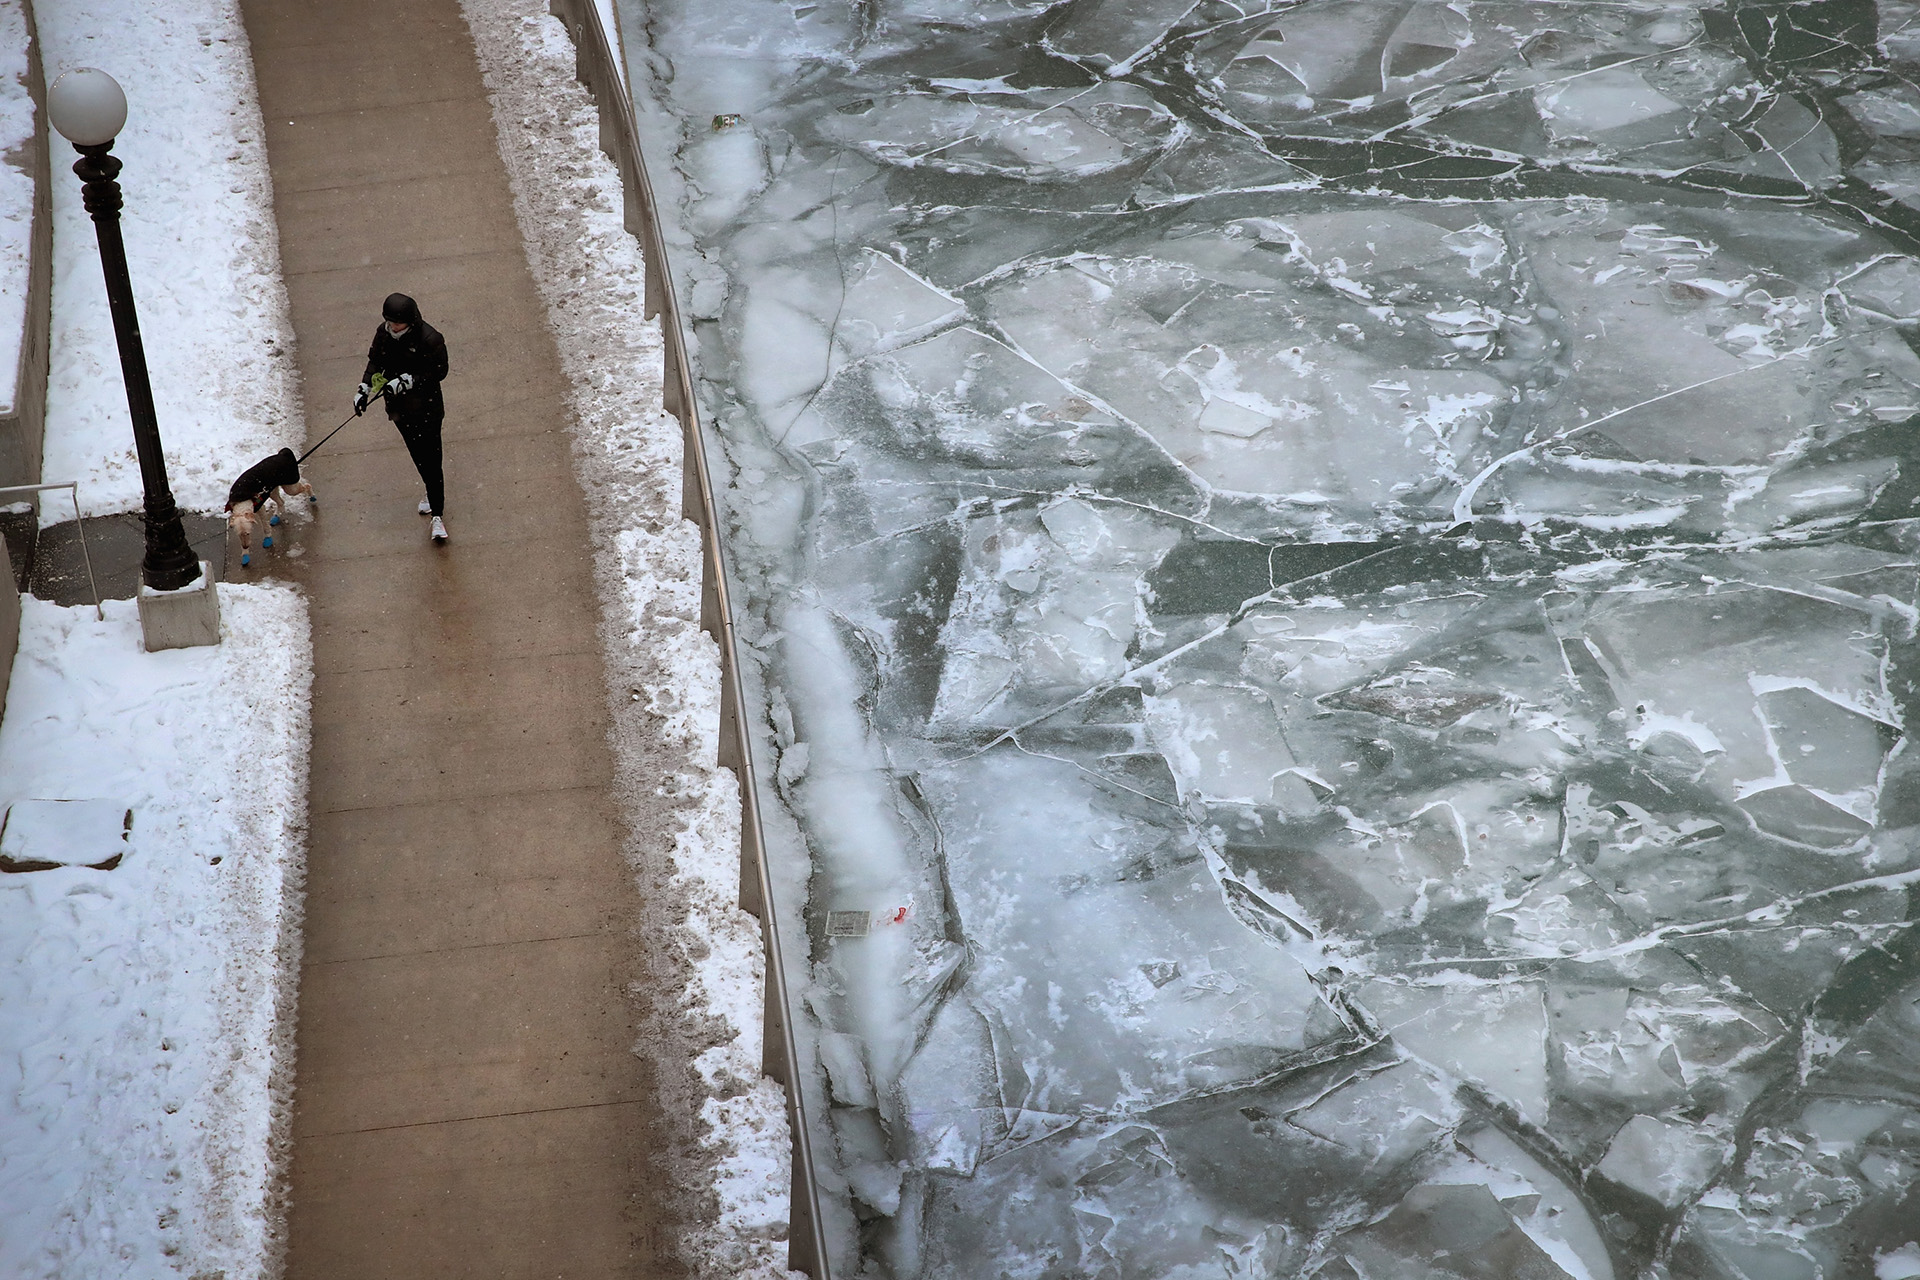 El río Chicago, convertido en un gran bloque de hielo (Photo by Scott Olson/Getty Images)